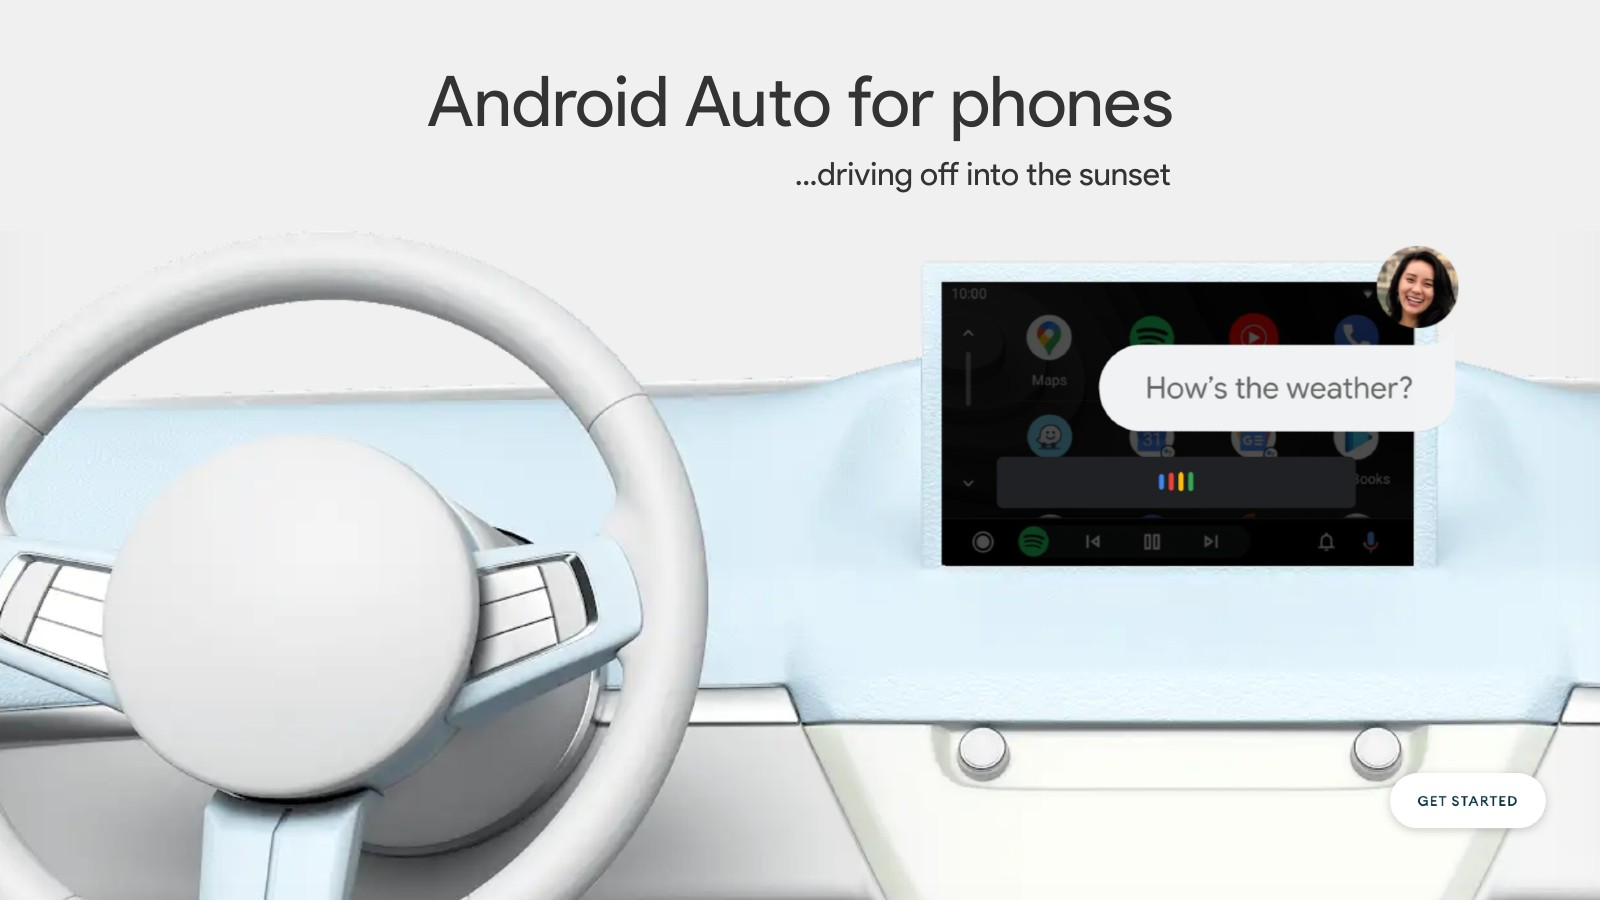 Android Auto for phones drives off into the sunset, Google Assistant takes its parking spot